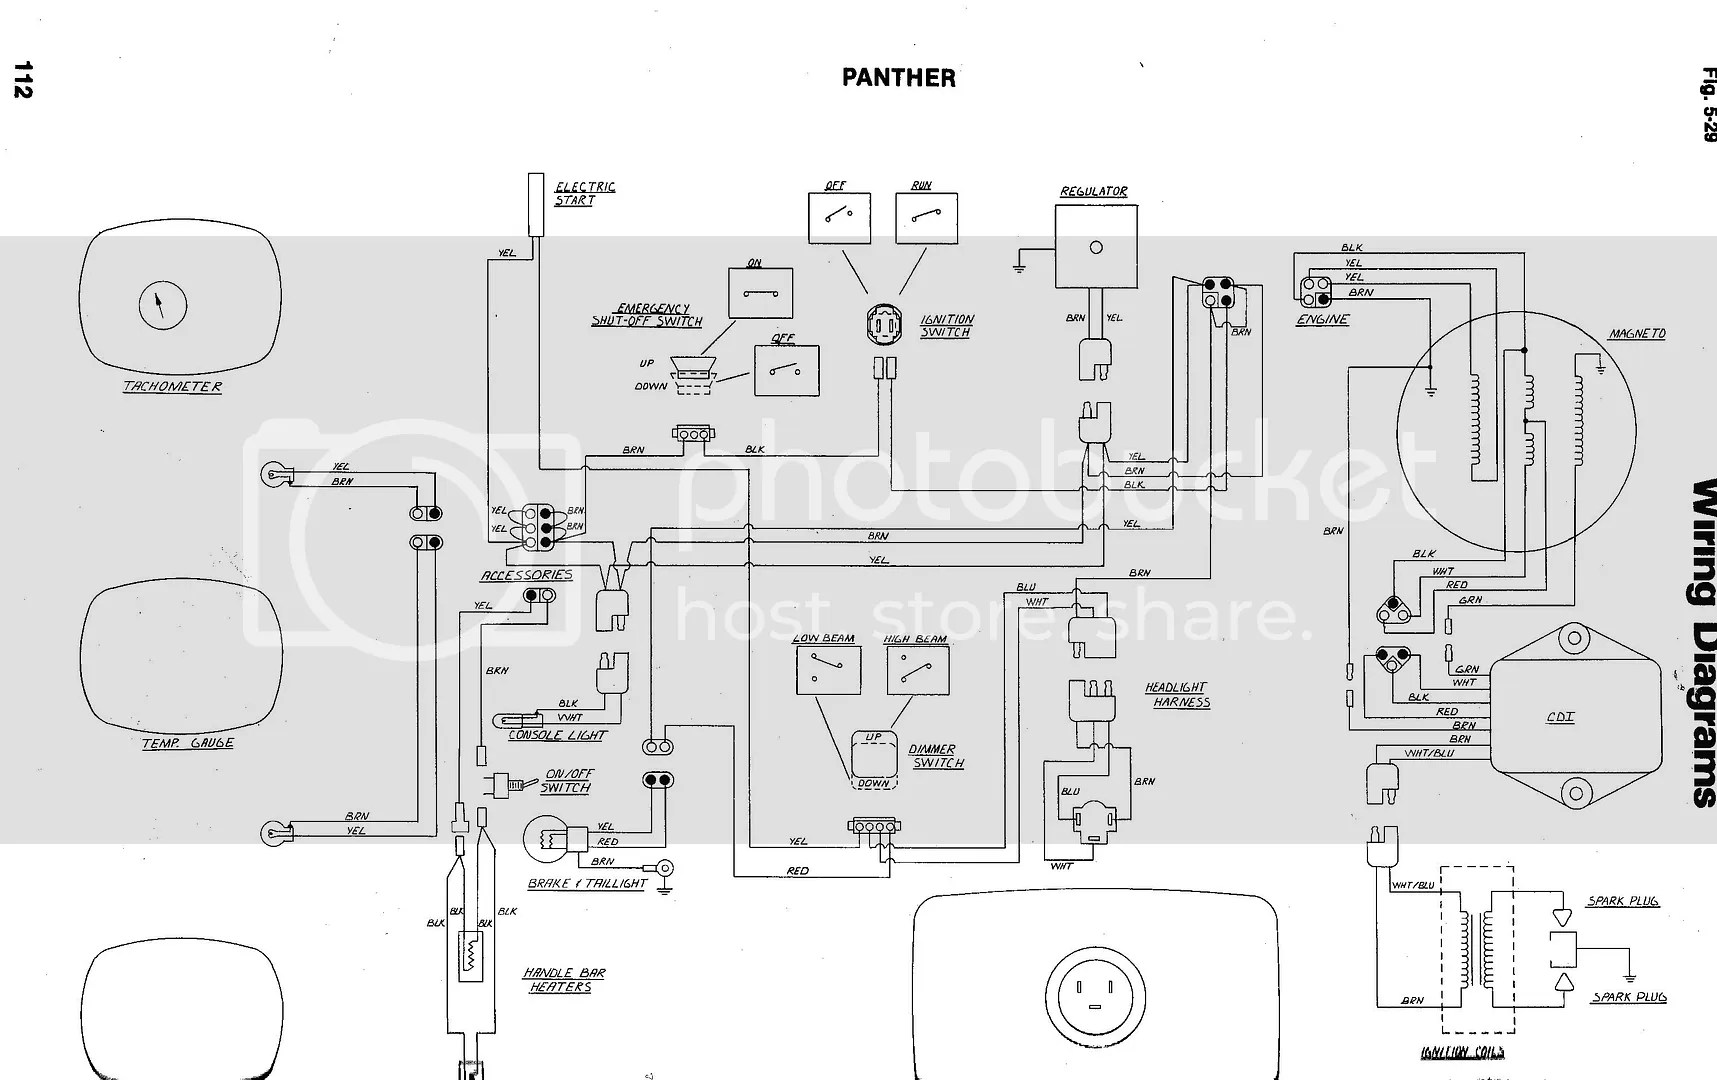 hight resolution of 1976 ski doo 340 wiring diagram wiring diagram schematic name wire diagram 2009 ski doo rf 440 ski doo wiring diagram